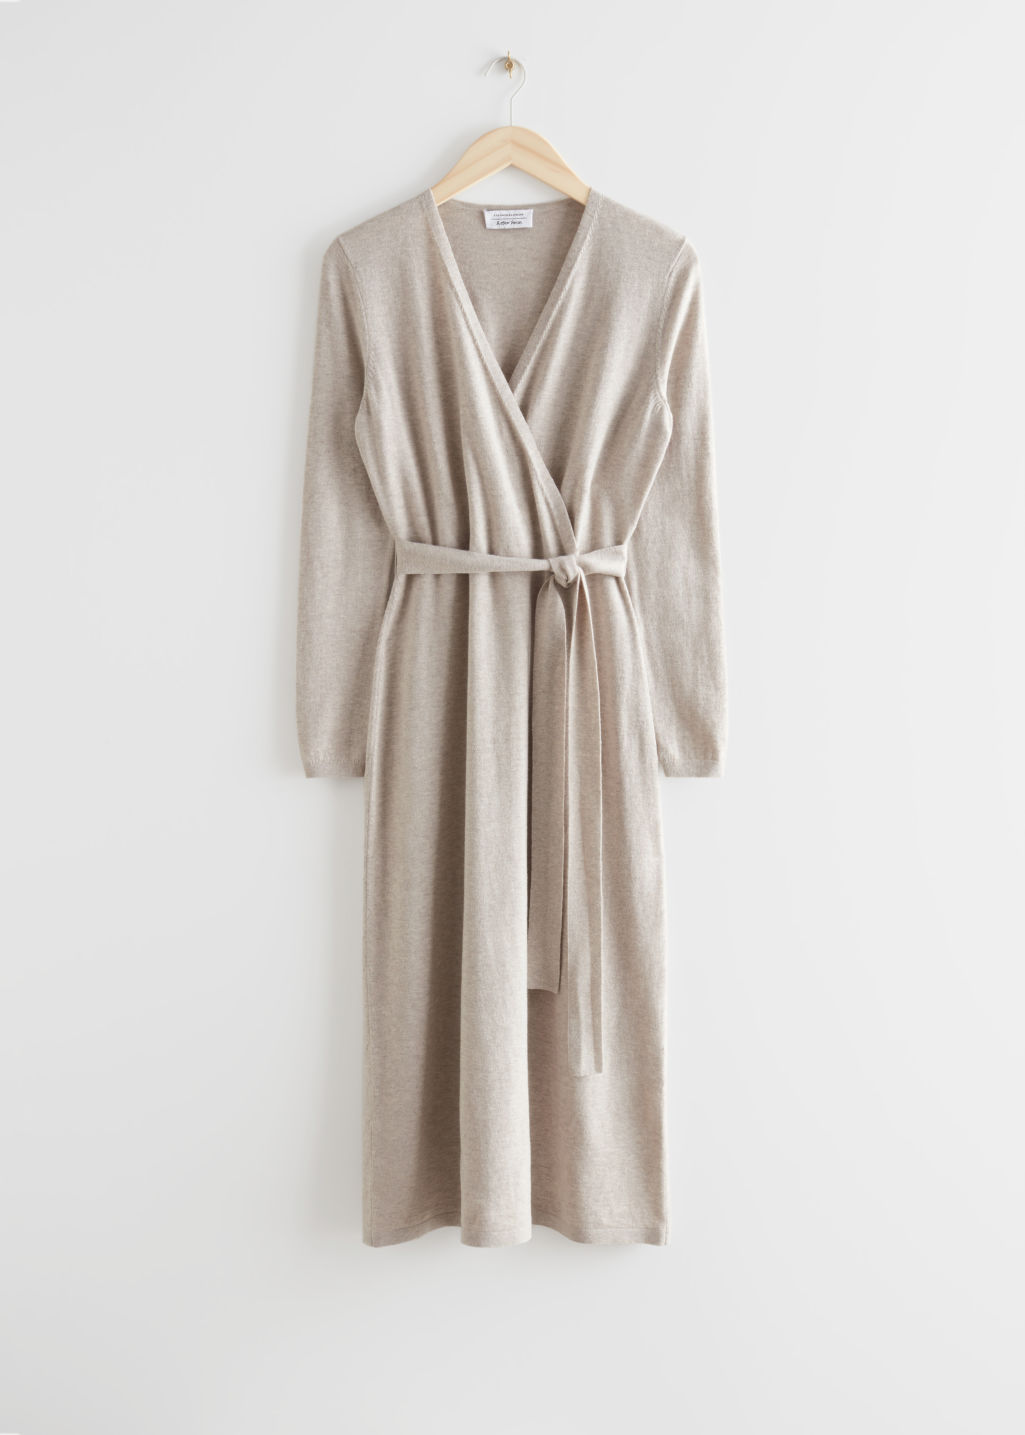 Belted Wool Dress Recent Finds 8/20